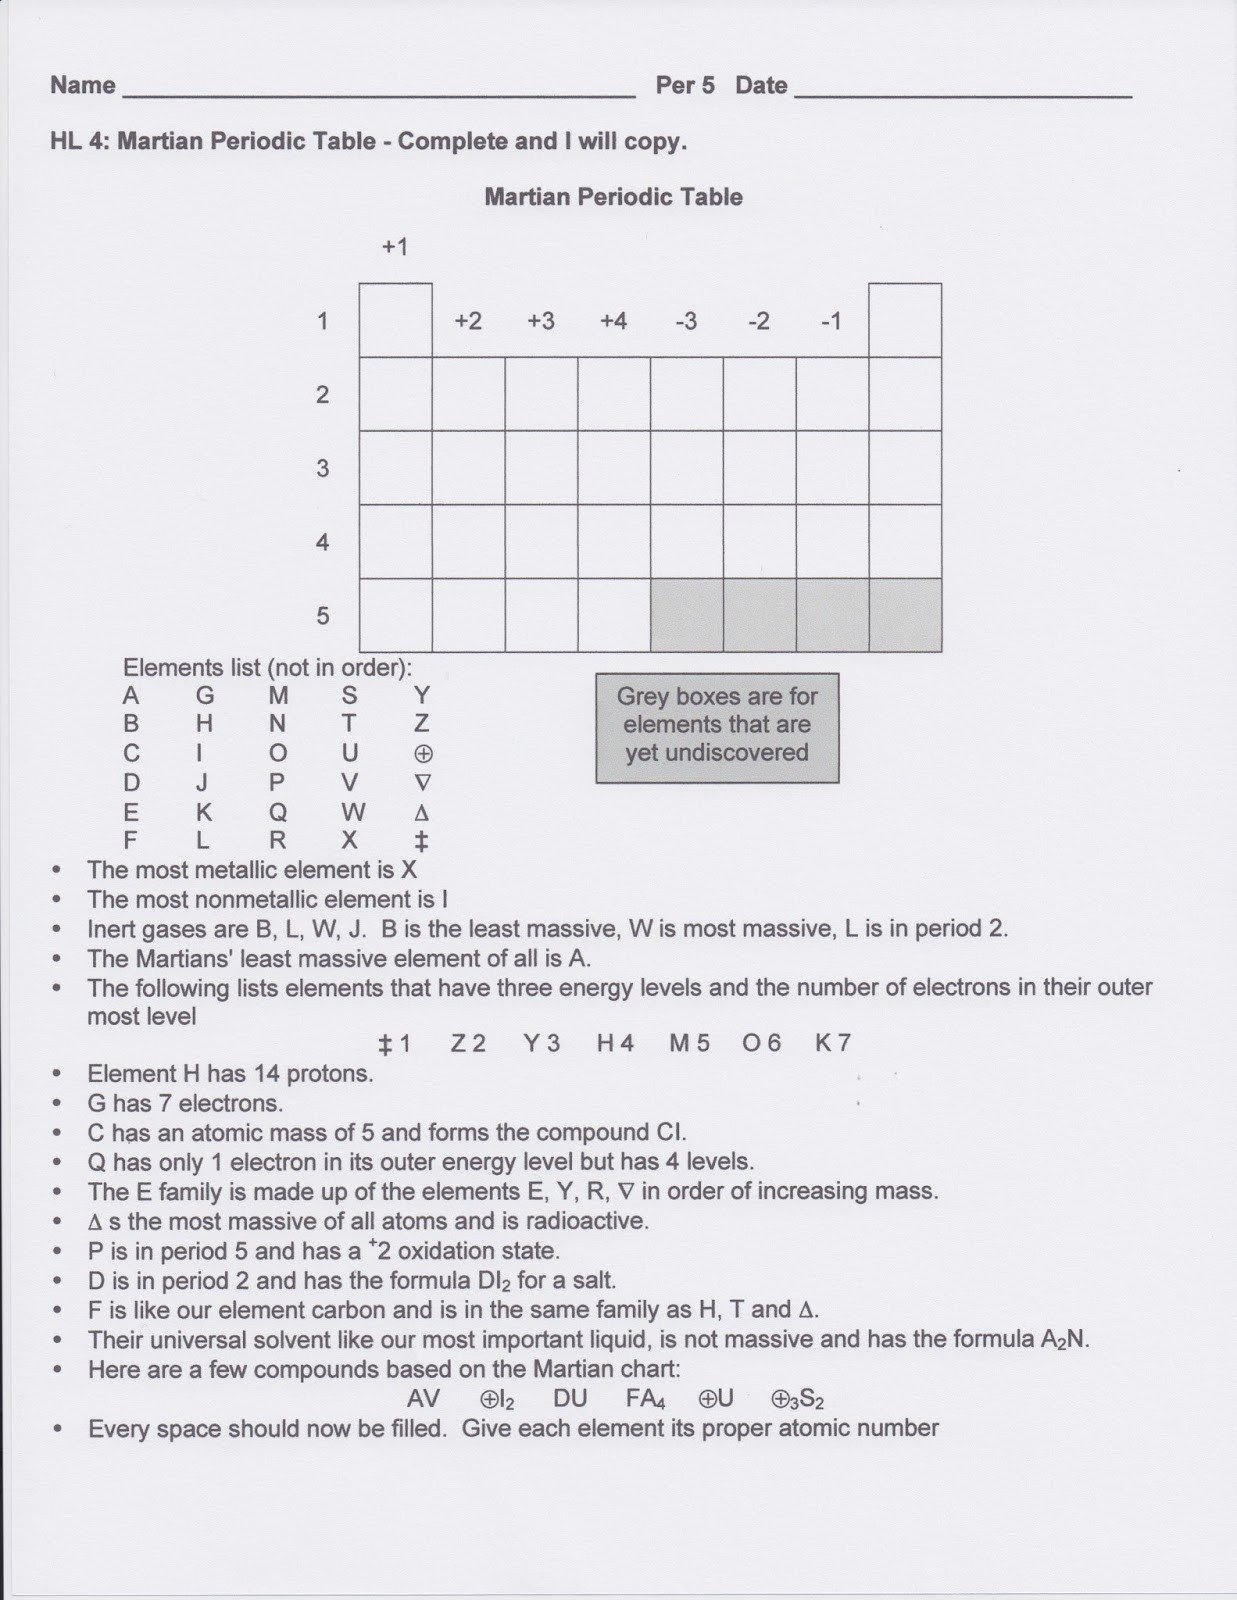 20 Martian Periodic Table Worksheet Answers